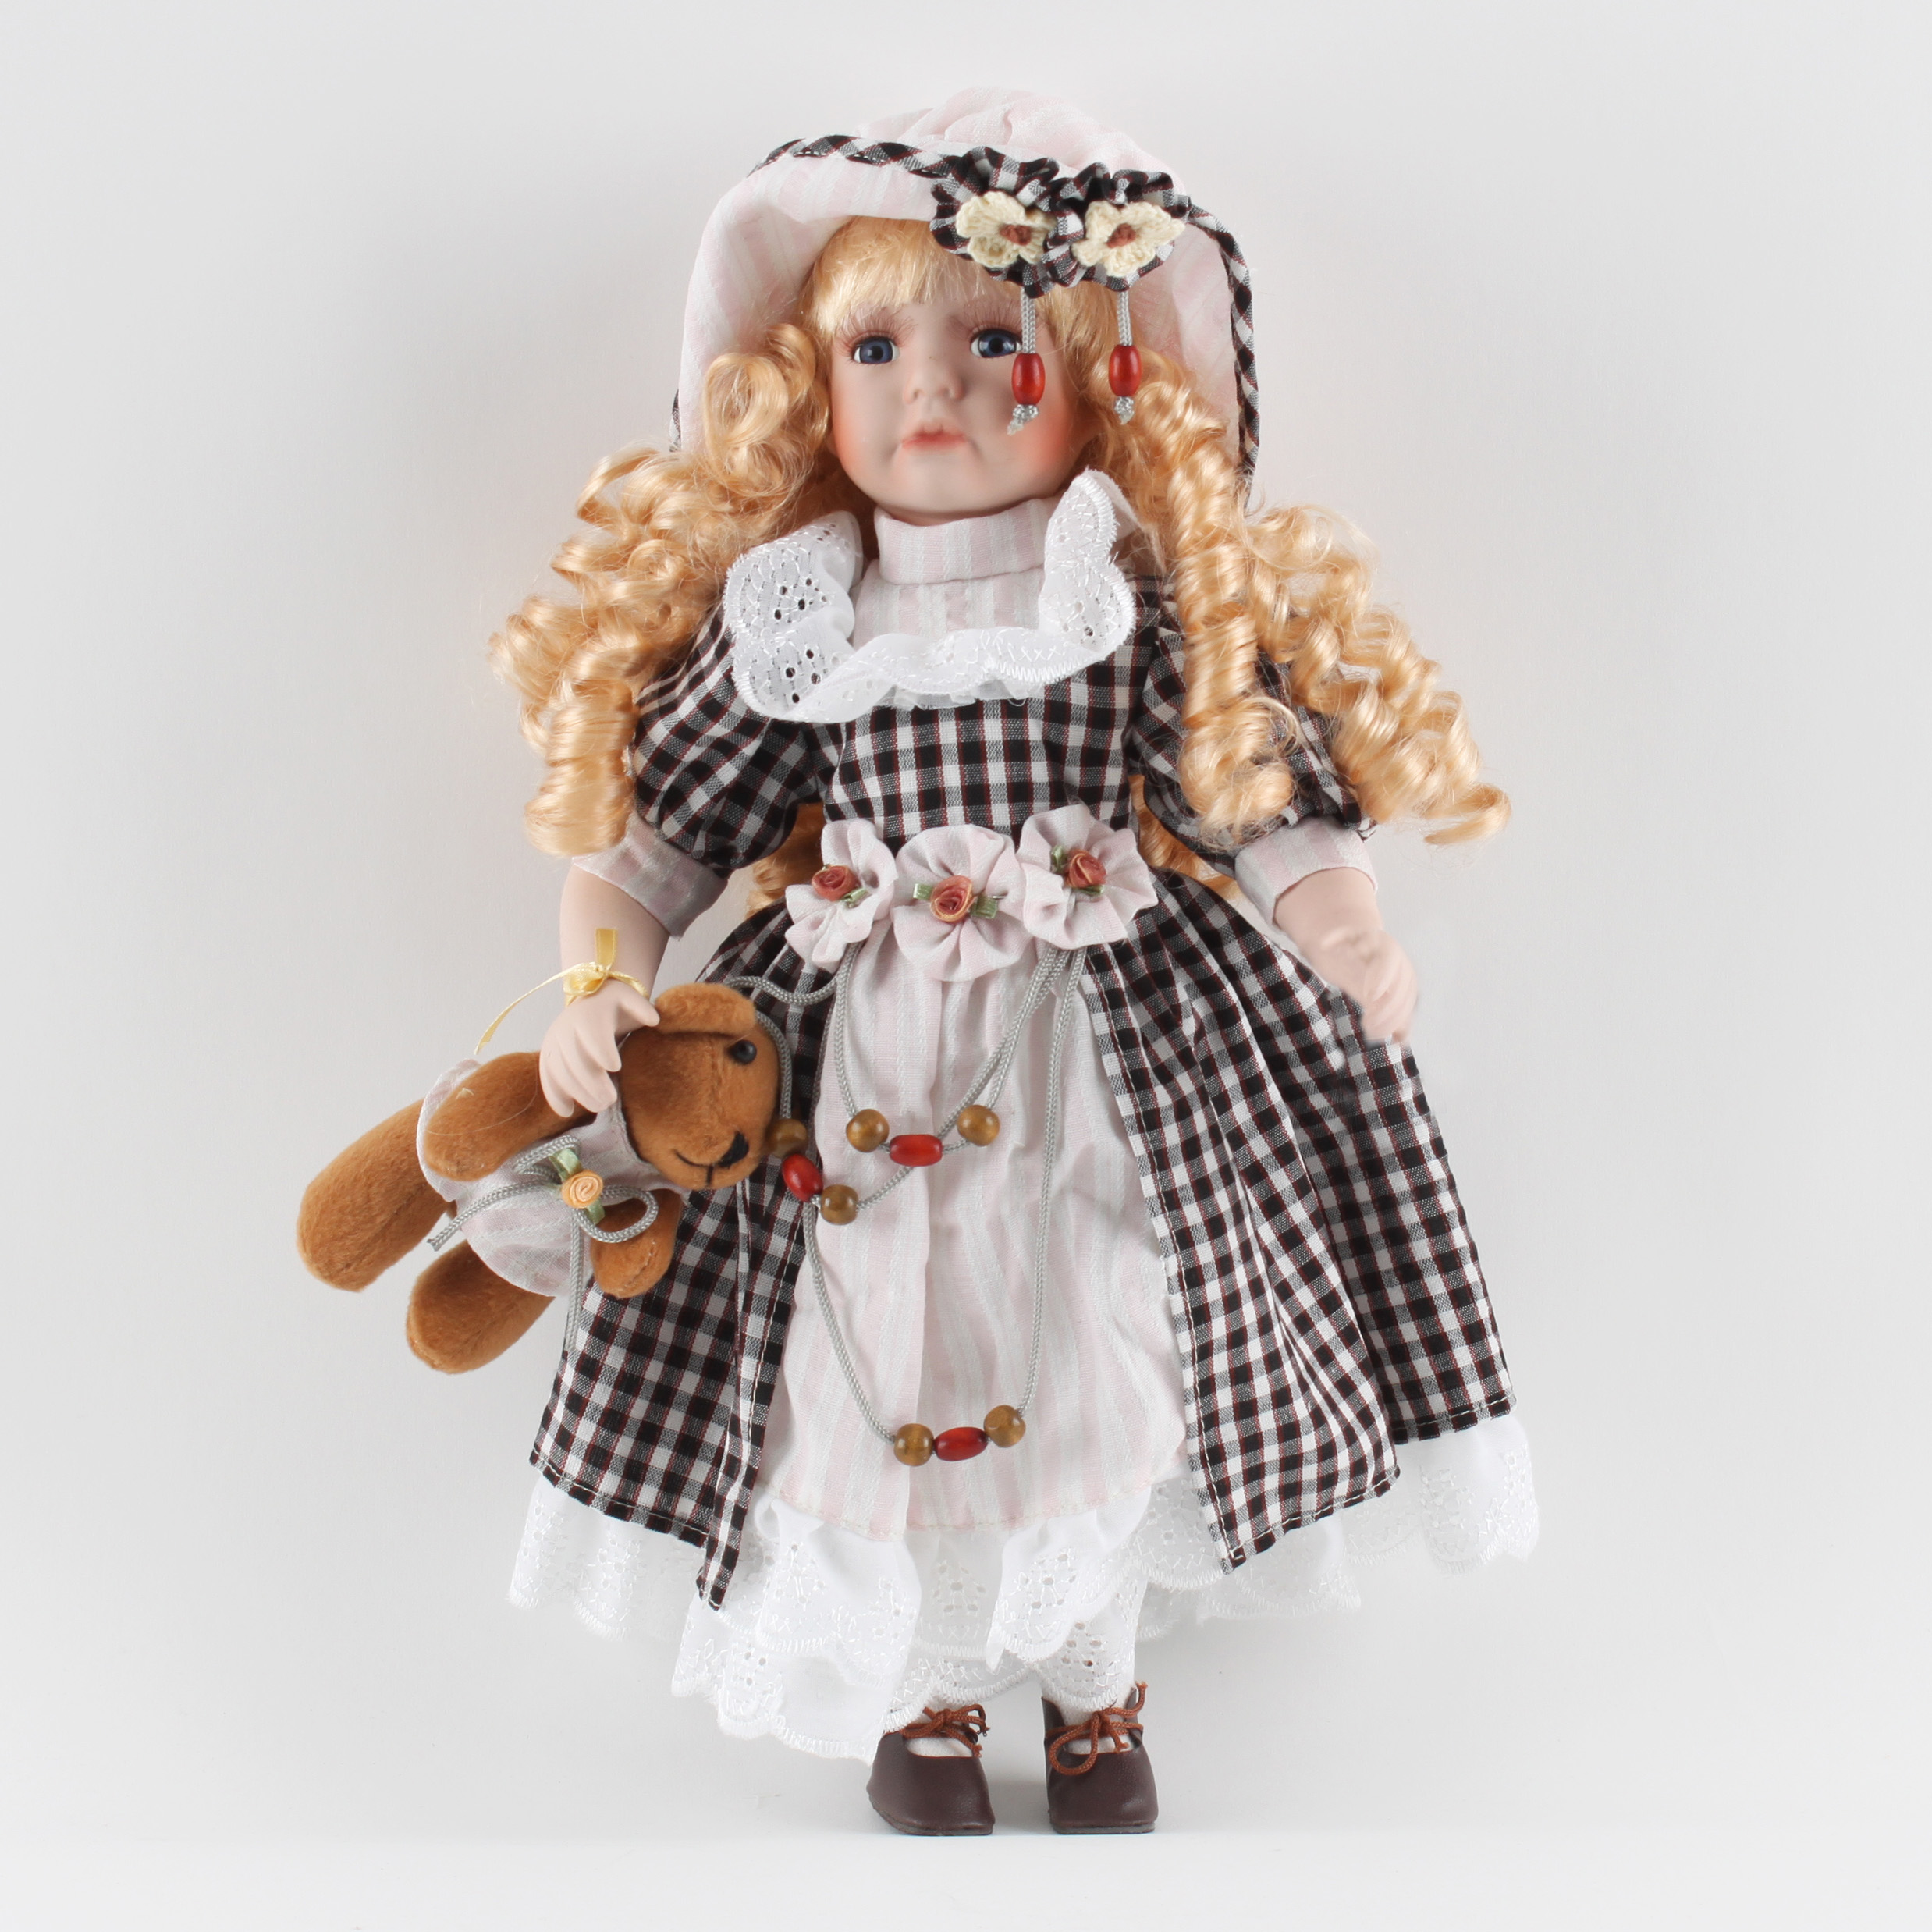 €26 PORCELAIN DOLL DECO W/FABRIC DRESS (POLYESTER) 20Χ20Χ41